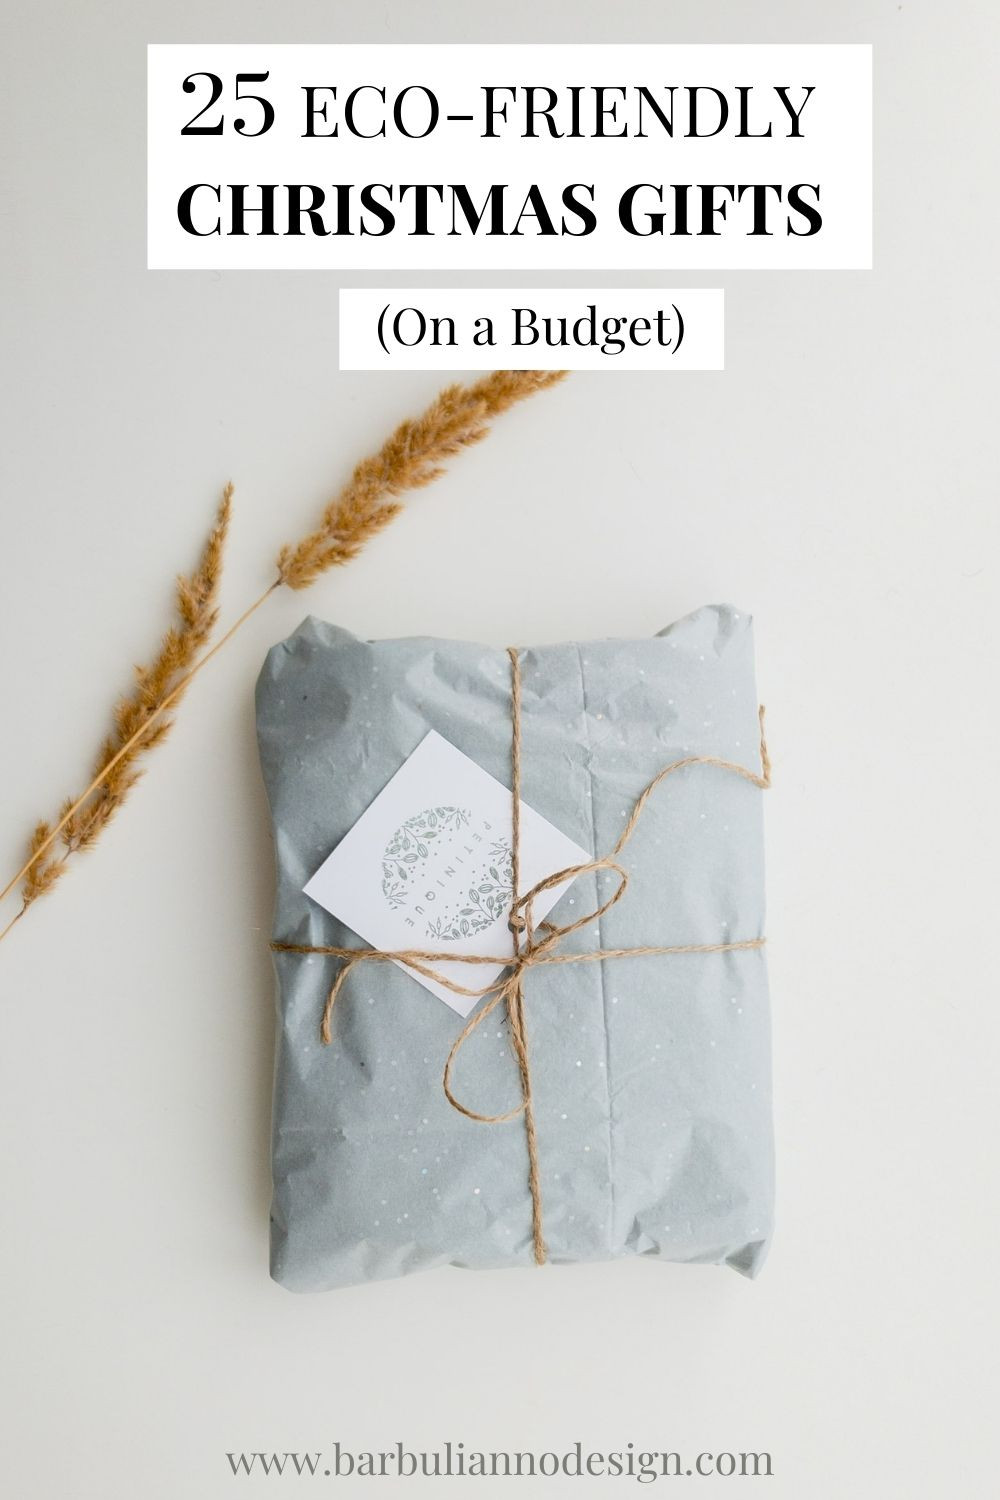 25 Best Eco-Friendly Christmas Gifts On a Budget